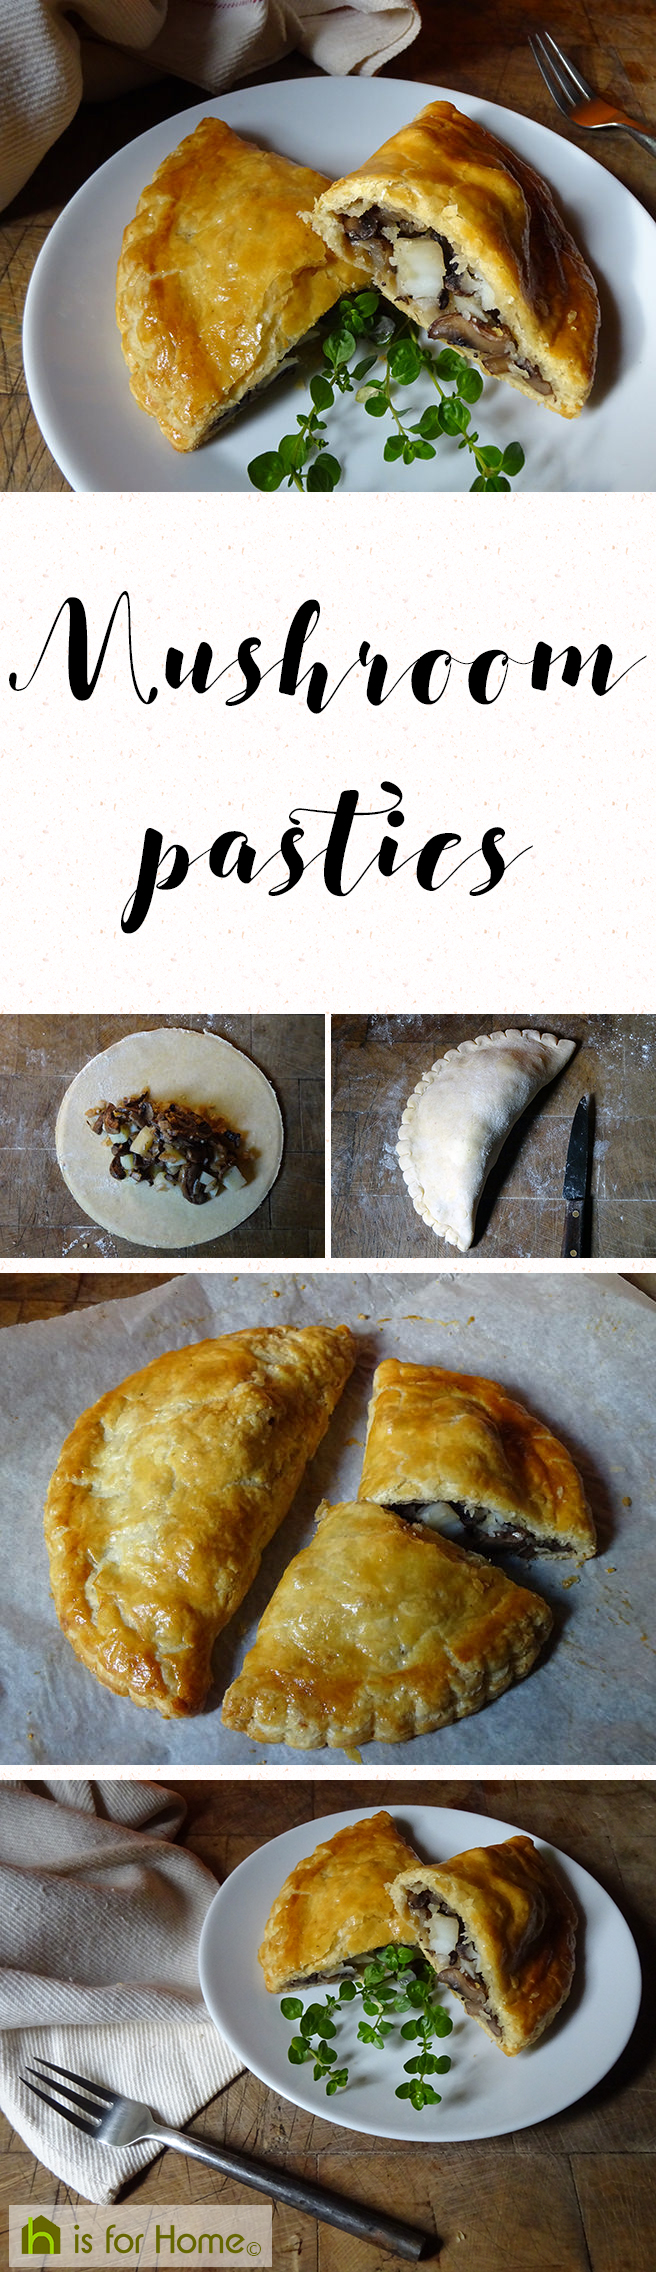 To mark #SourdoughSeptember I made mushroom pasties with sourdough pastry. Get the #recipe here☞ http://4ho.me/2glXQsH #fdbloggers #food